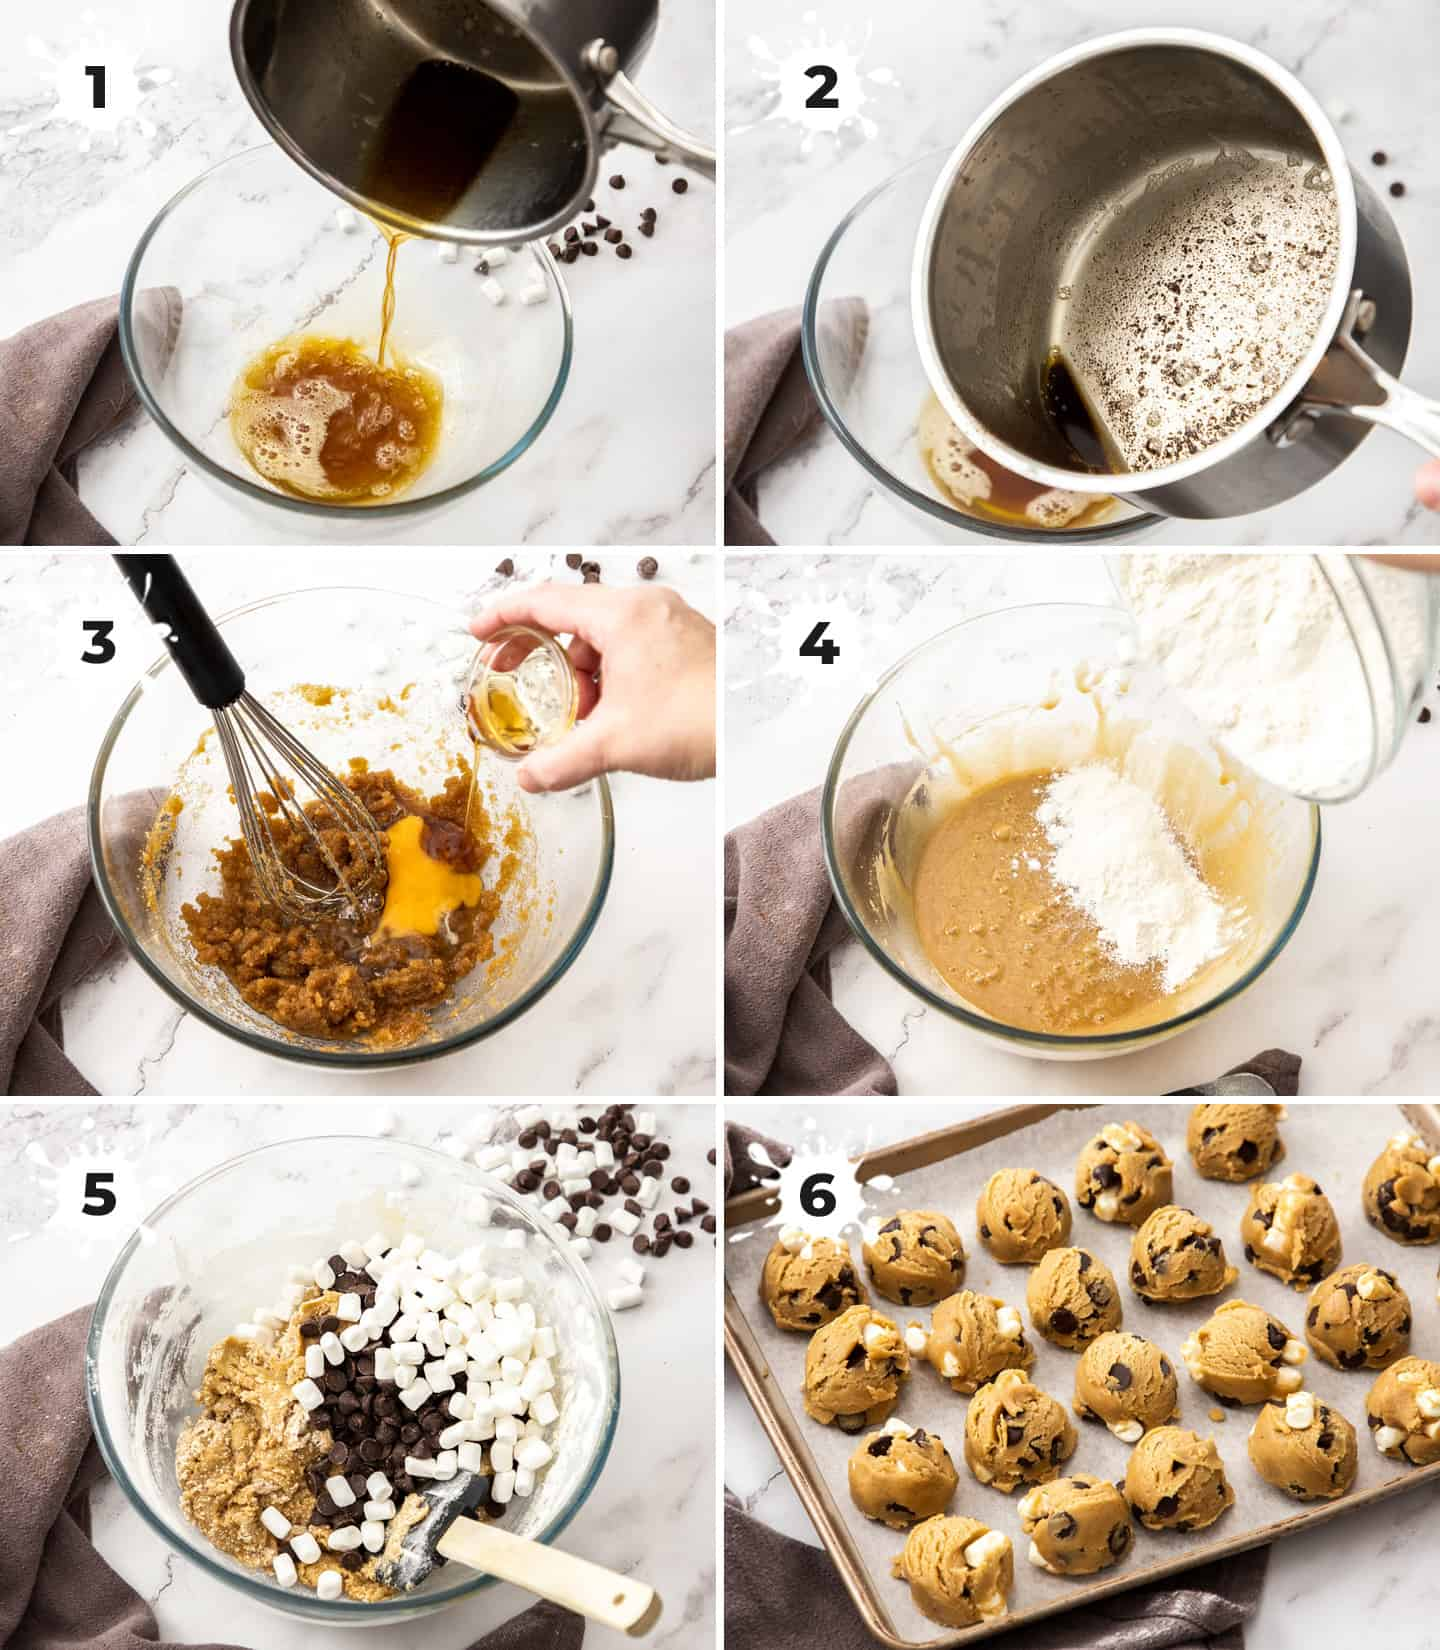 A collage of 6 images showing how to make the cookies.